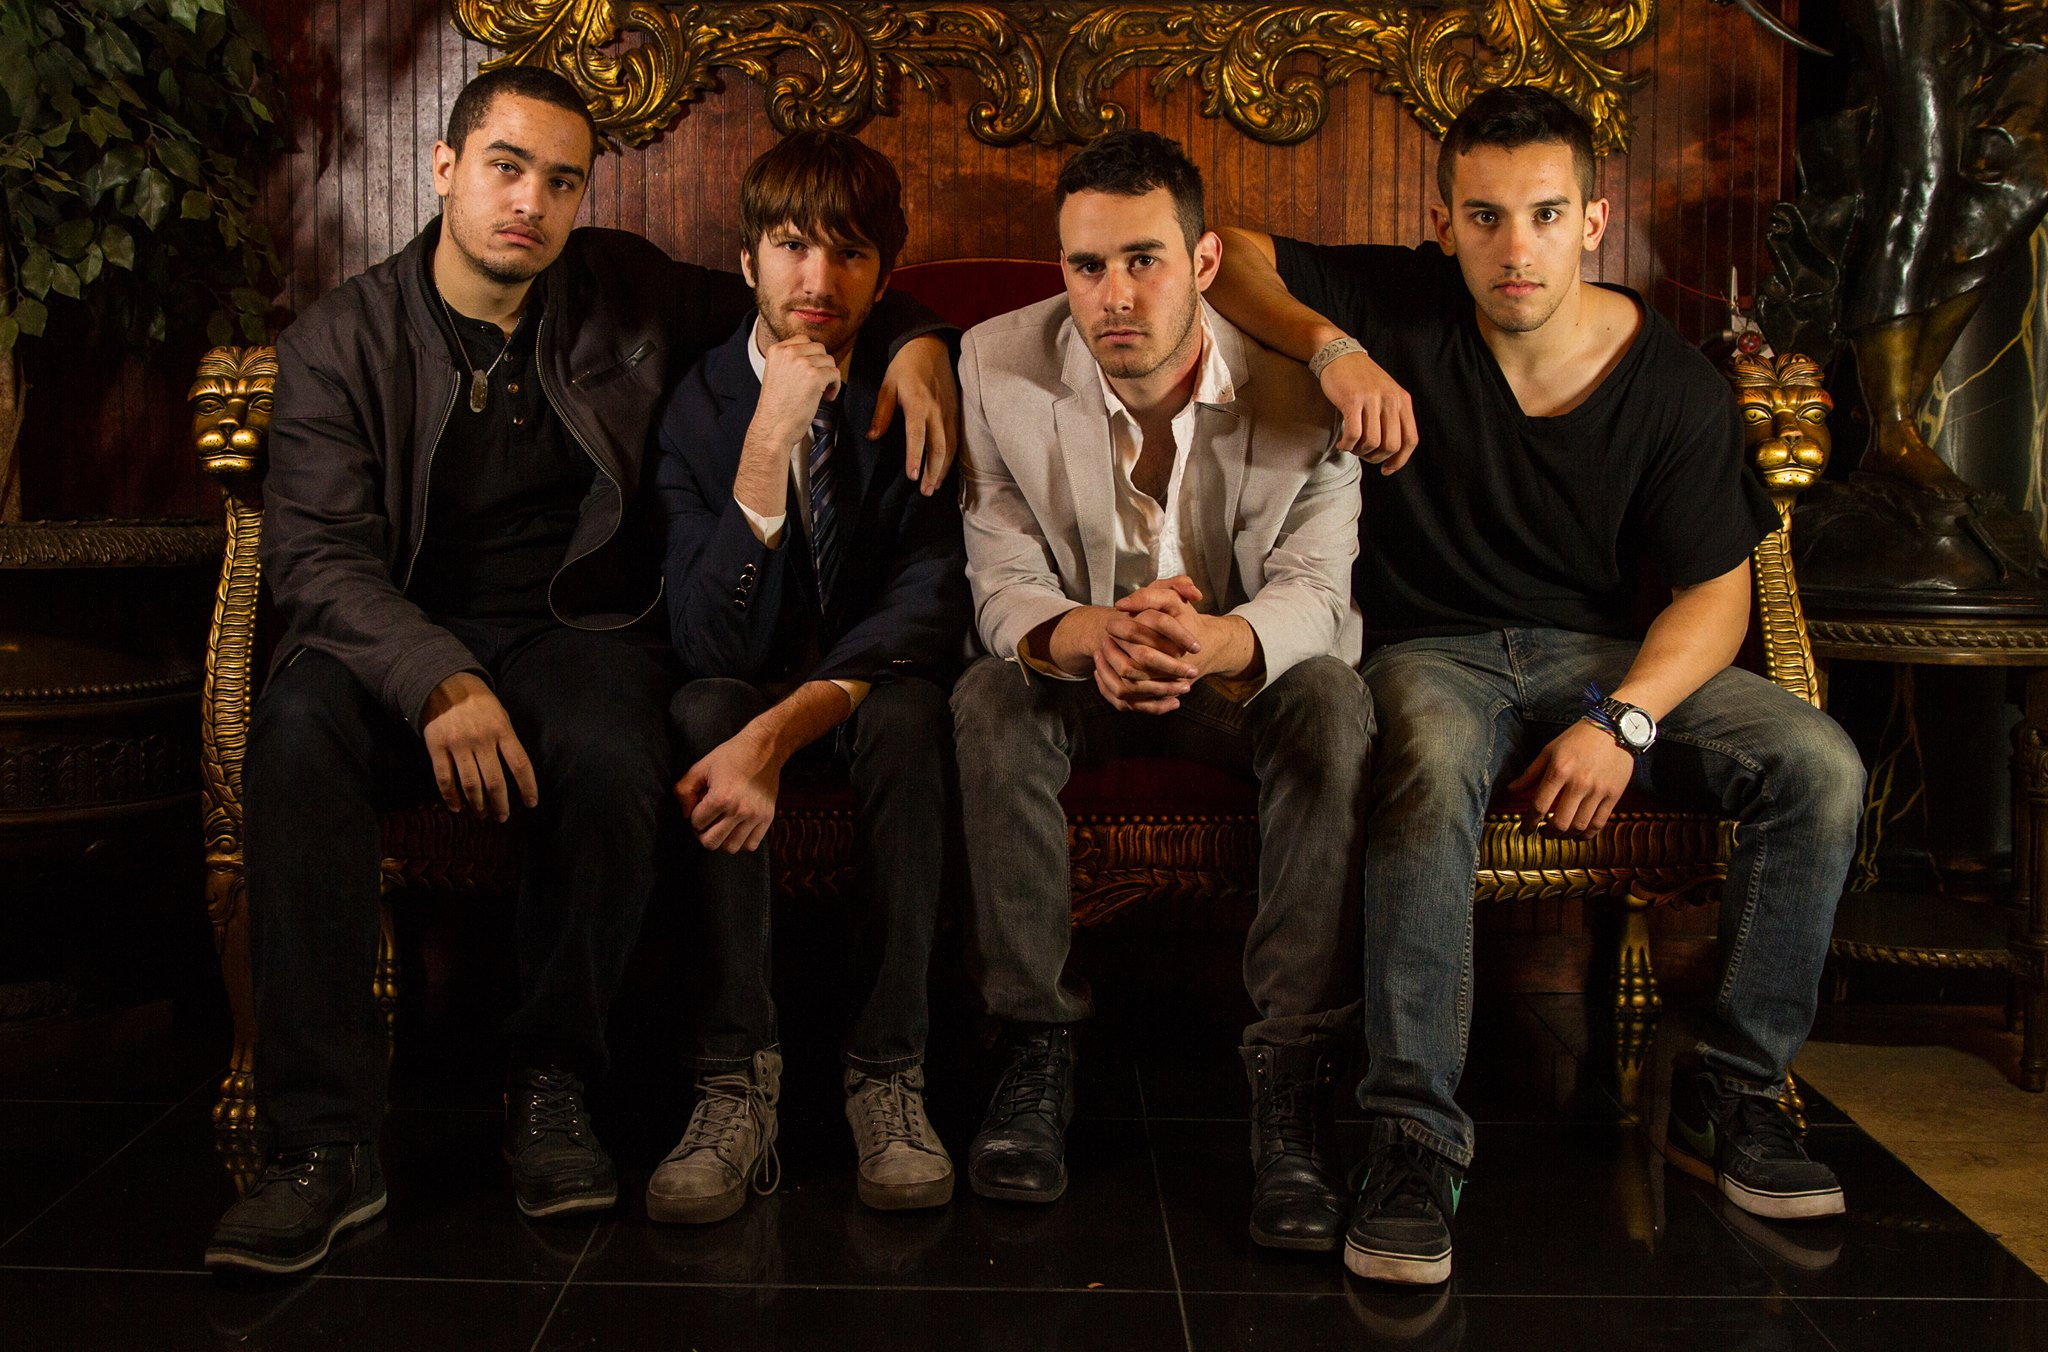 Walk Off Hits is a pop/rock band that consists of Ross LaMarca- Vocals, Lead Guitar,Spencer Sasarita-Drums, Backing Vocals,Rion Rogers-Keyboards, Backing Vocals, and Will Bauer-Bass, Backing Vocals. http://www.walkoffhits.com